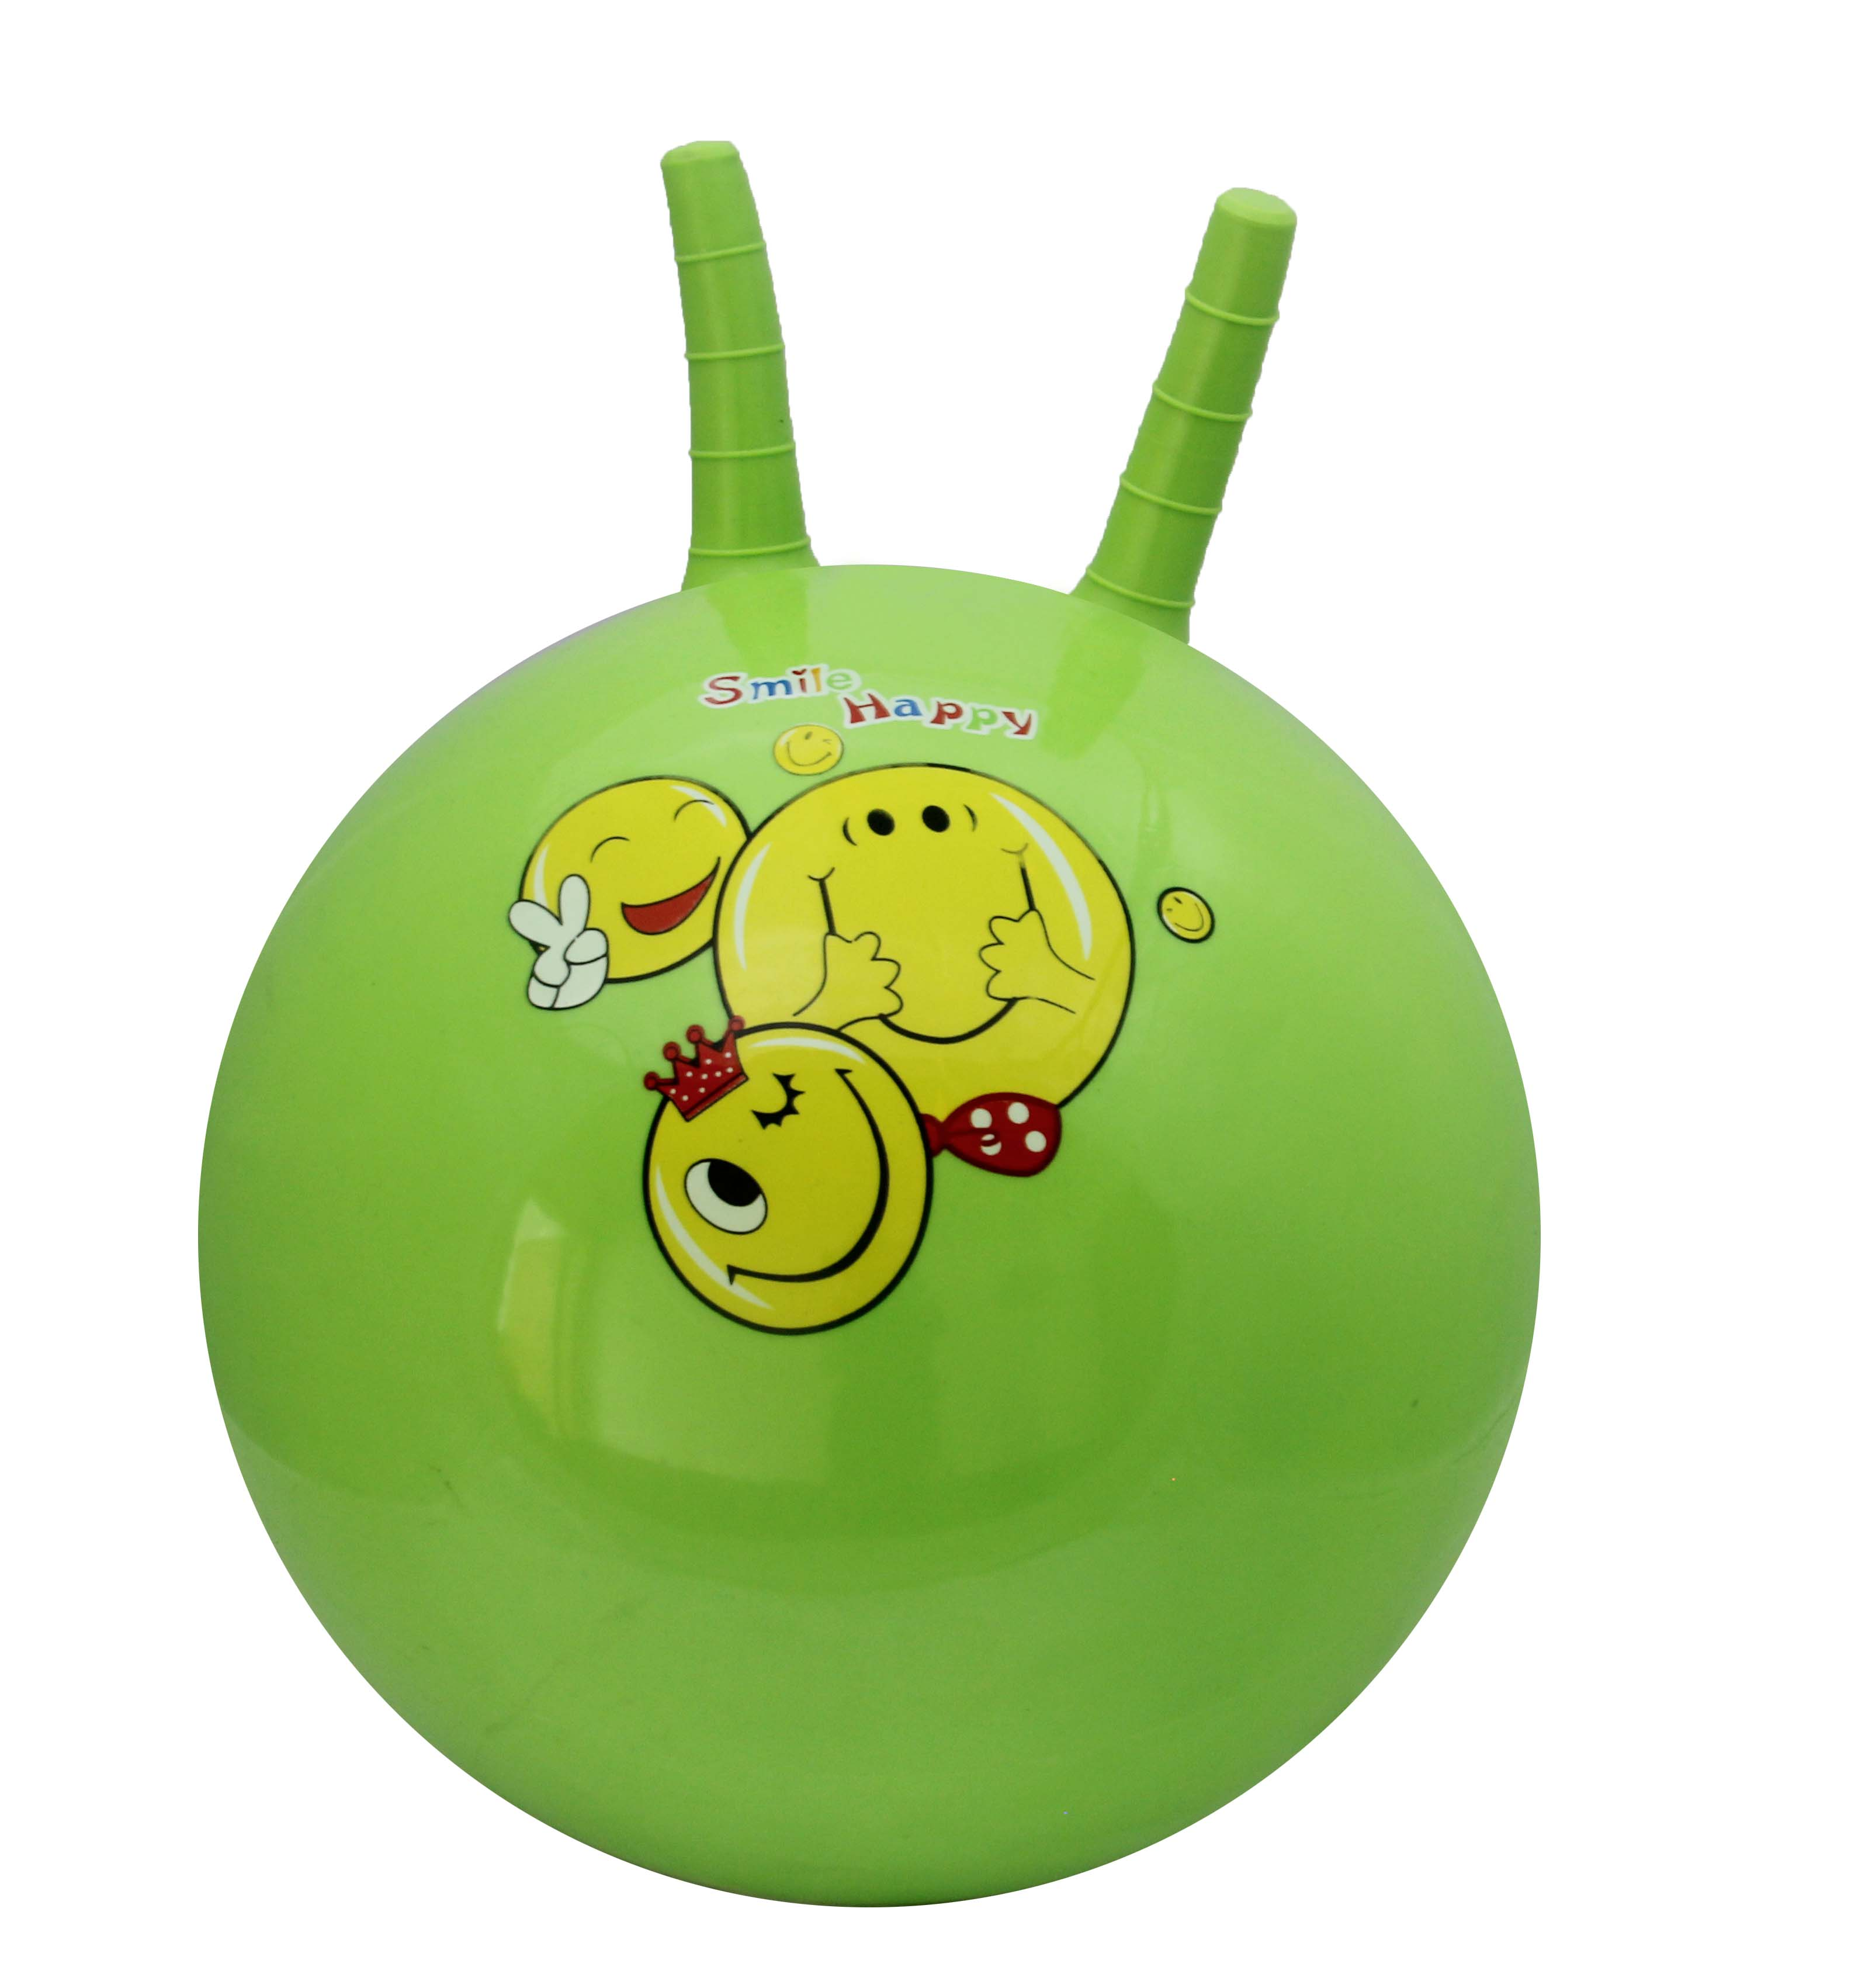 40CM High Quality & Durable Inflatable PVC Hopper Ball with Ears For Kids